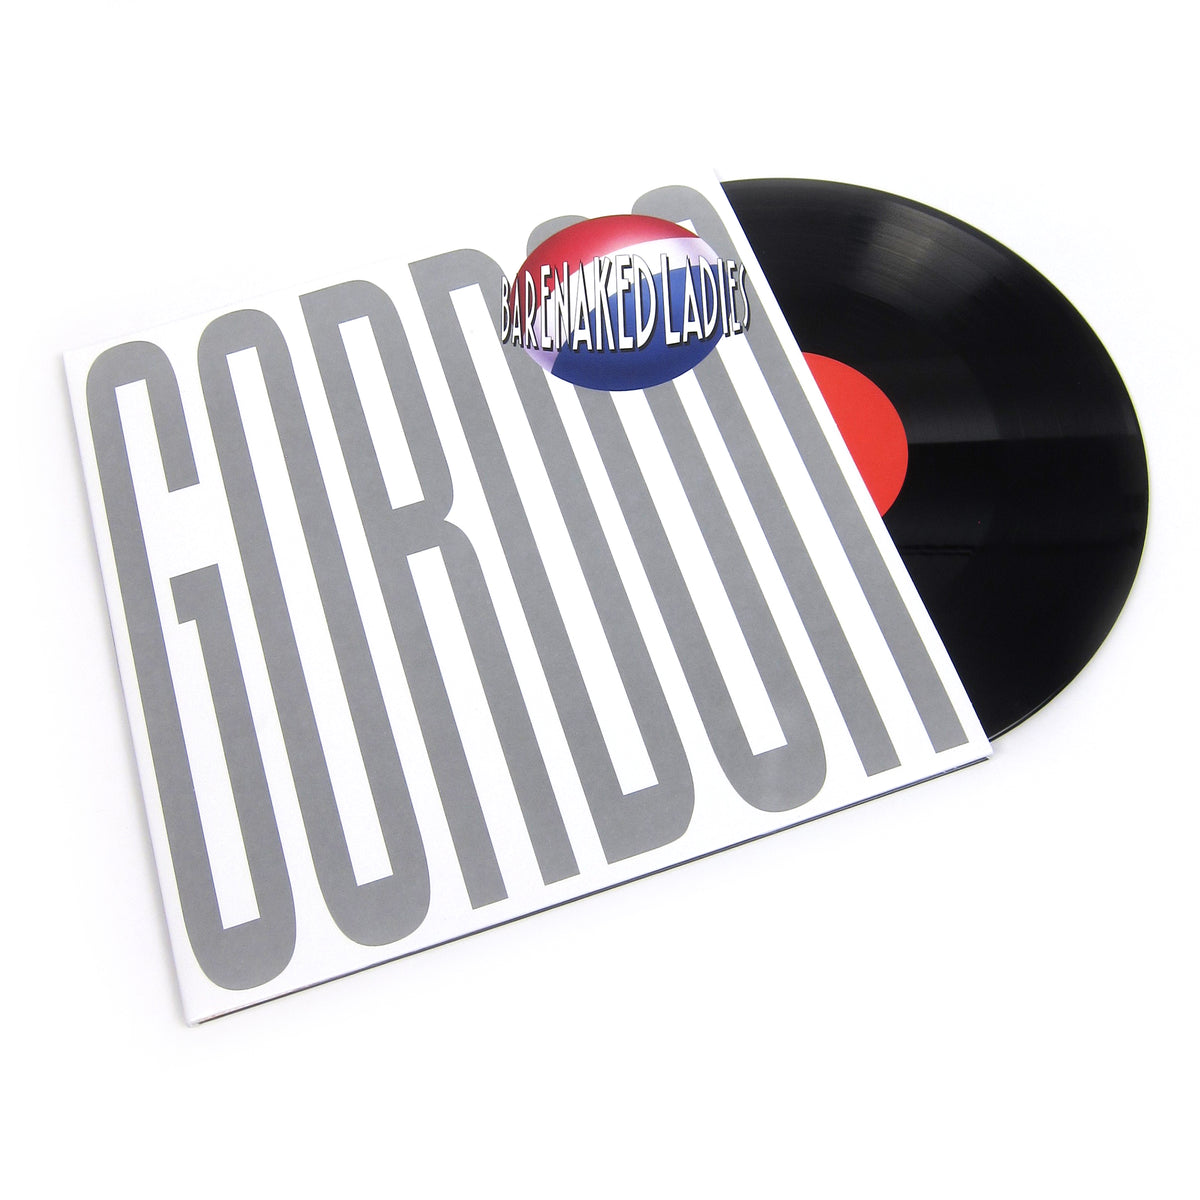 Barenaked Ladies: Gordon (180g) Vinyl 2LP